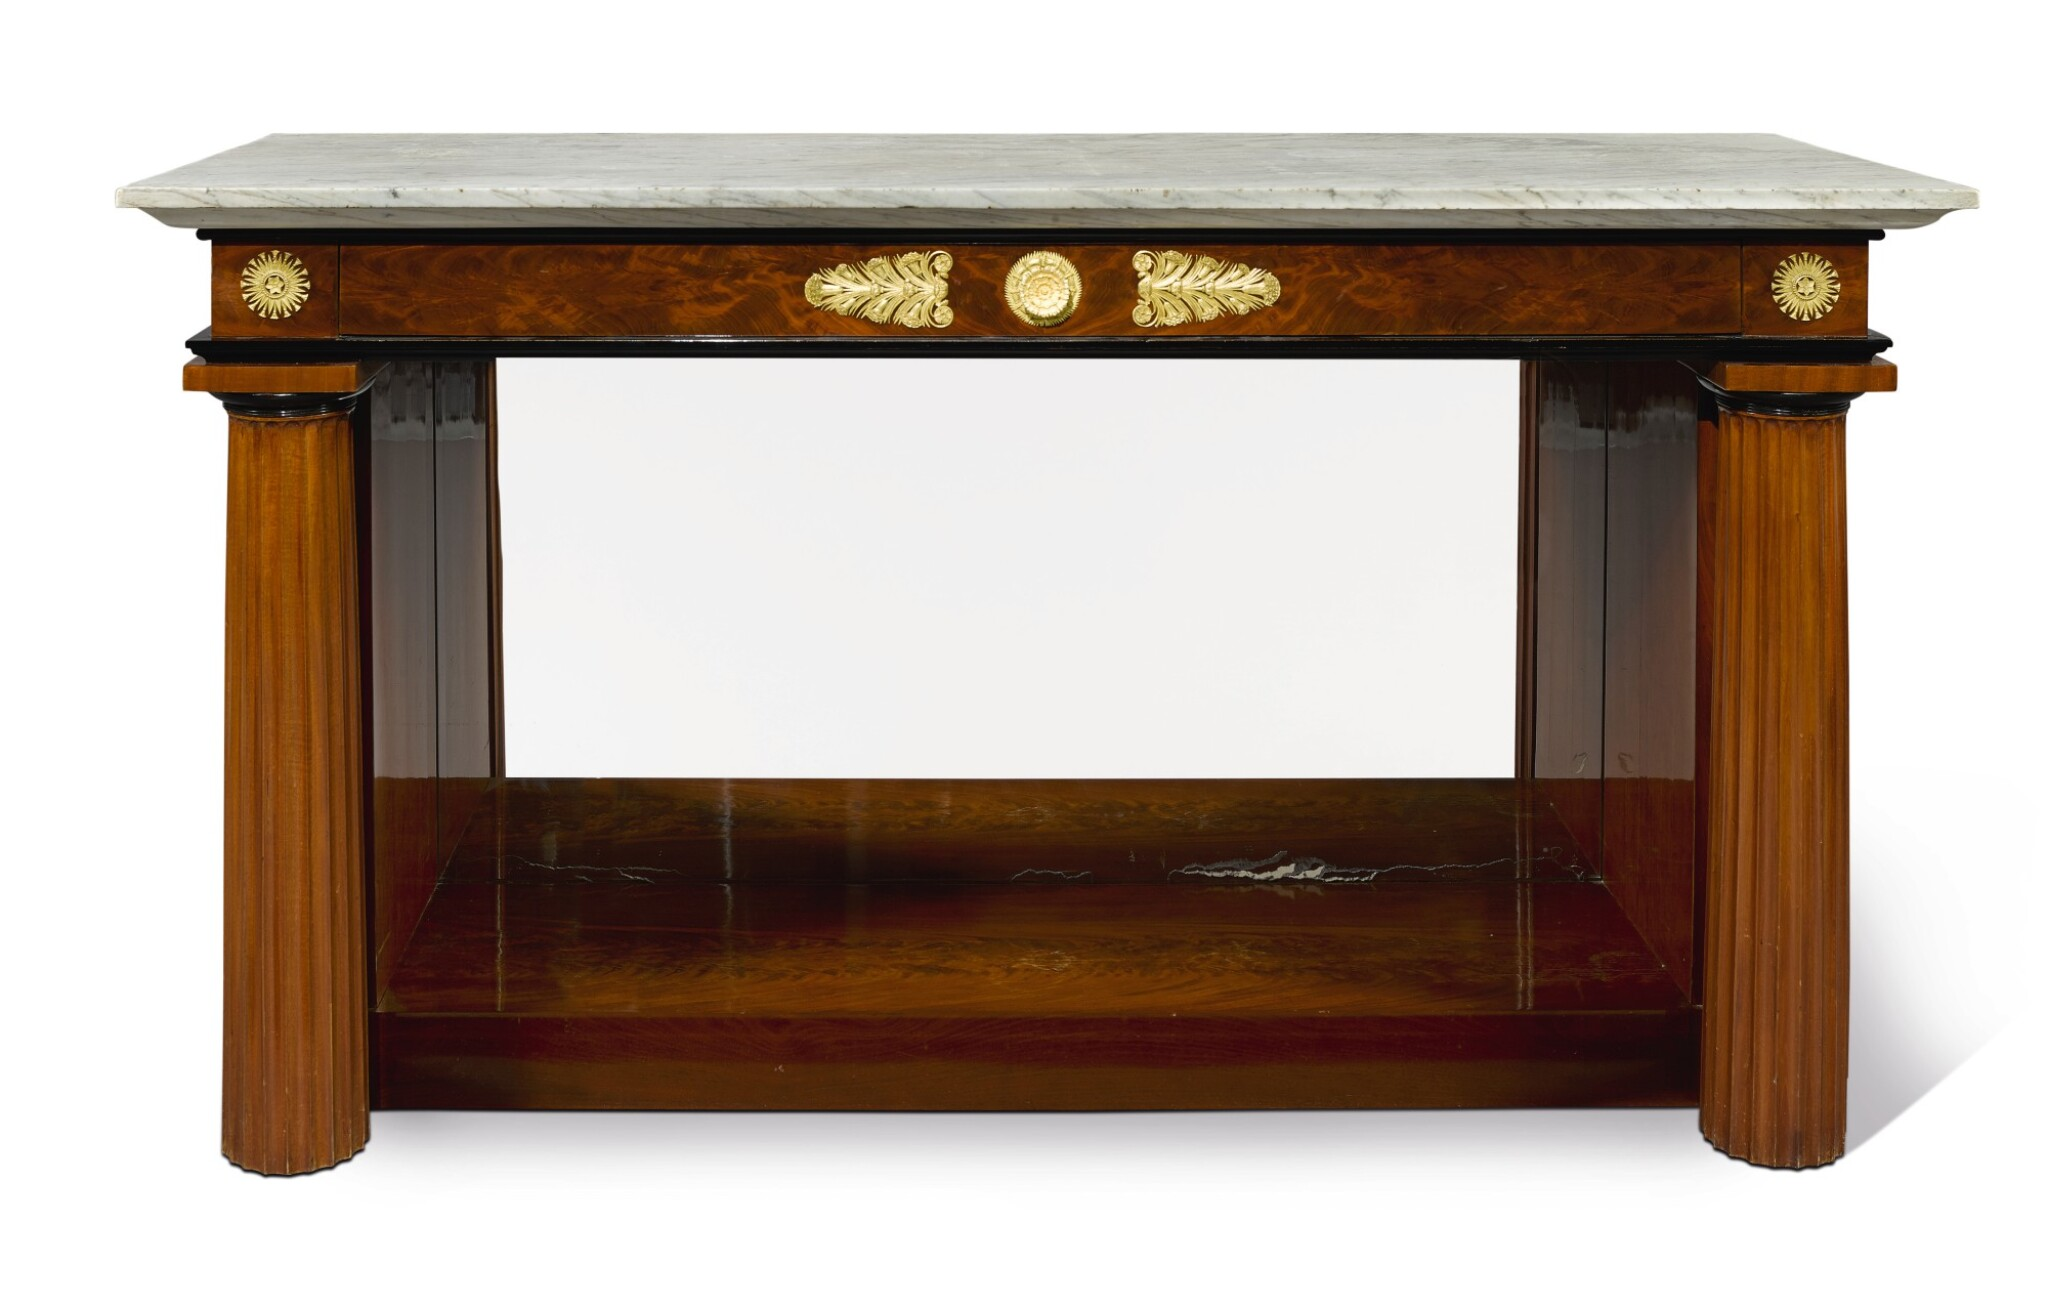 View full screen - View 1 of Lot 239. AN EMPIRE STYLE GILT BRONZE-MOUNTED MAHOGANY CONSOLE TABLE.